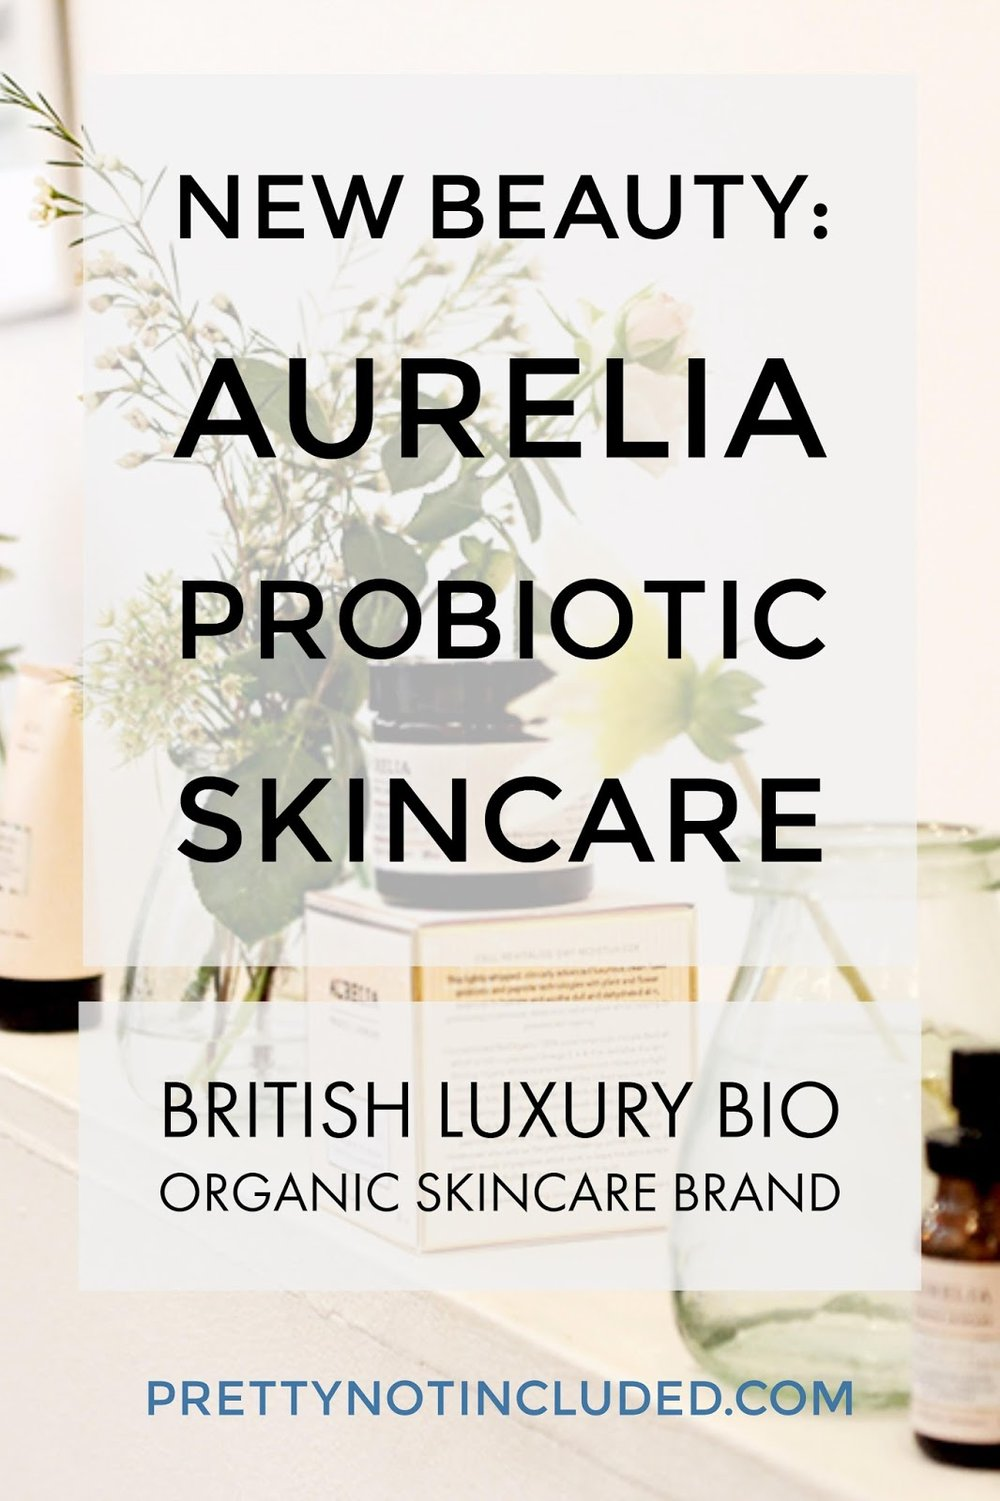 Mindful Moments Aurelia Probiotic Skincare Pop-Up Boutique